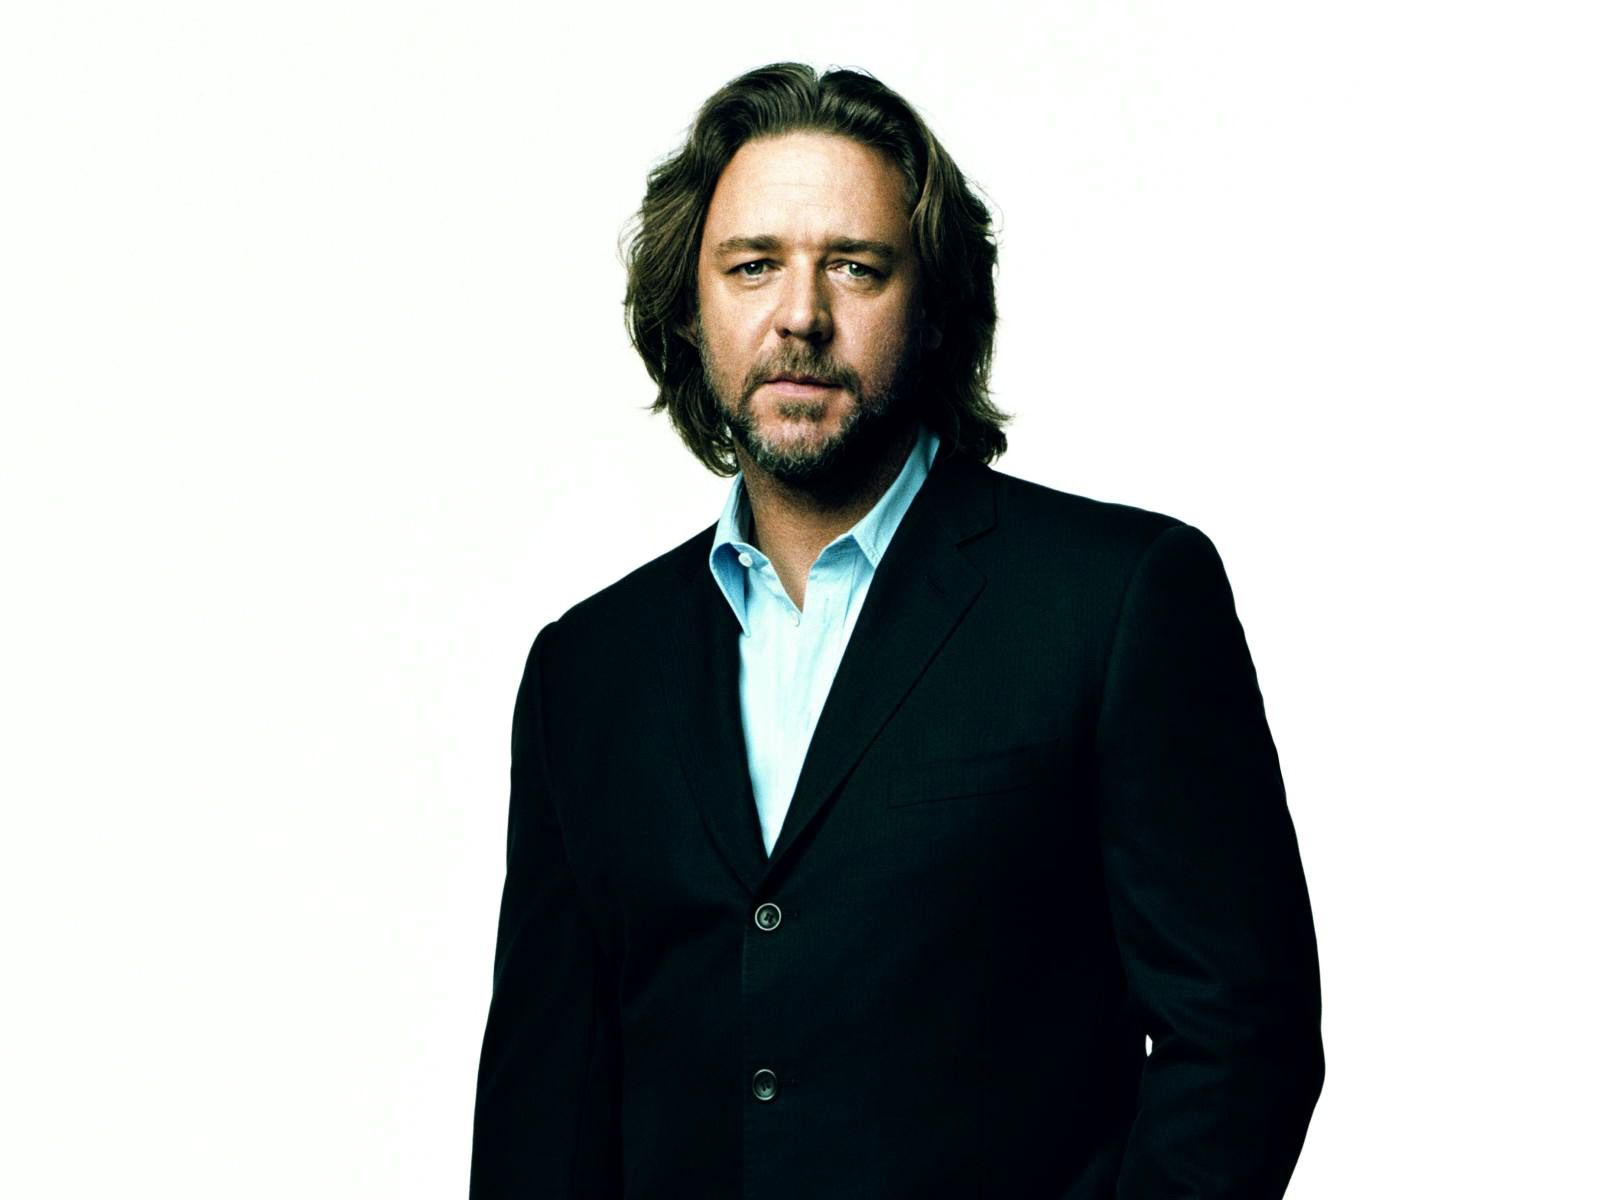 Russell Crowe Actor Wallpapers 52380 1600x1200 px ~ HDWallSource